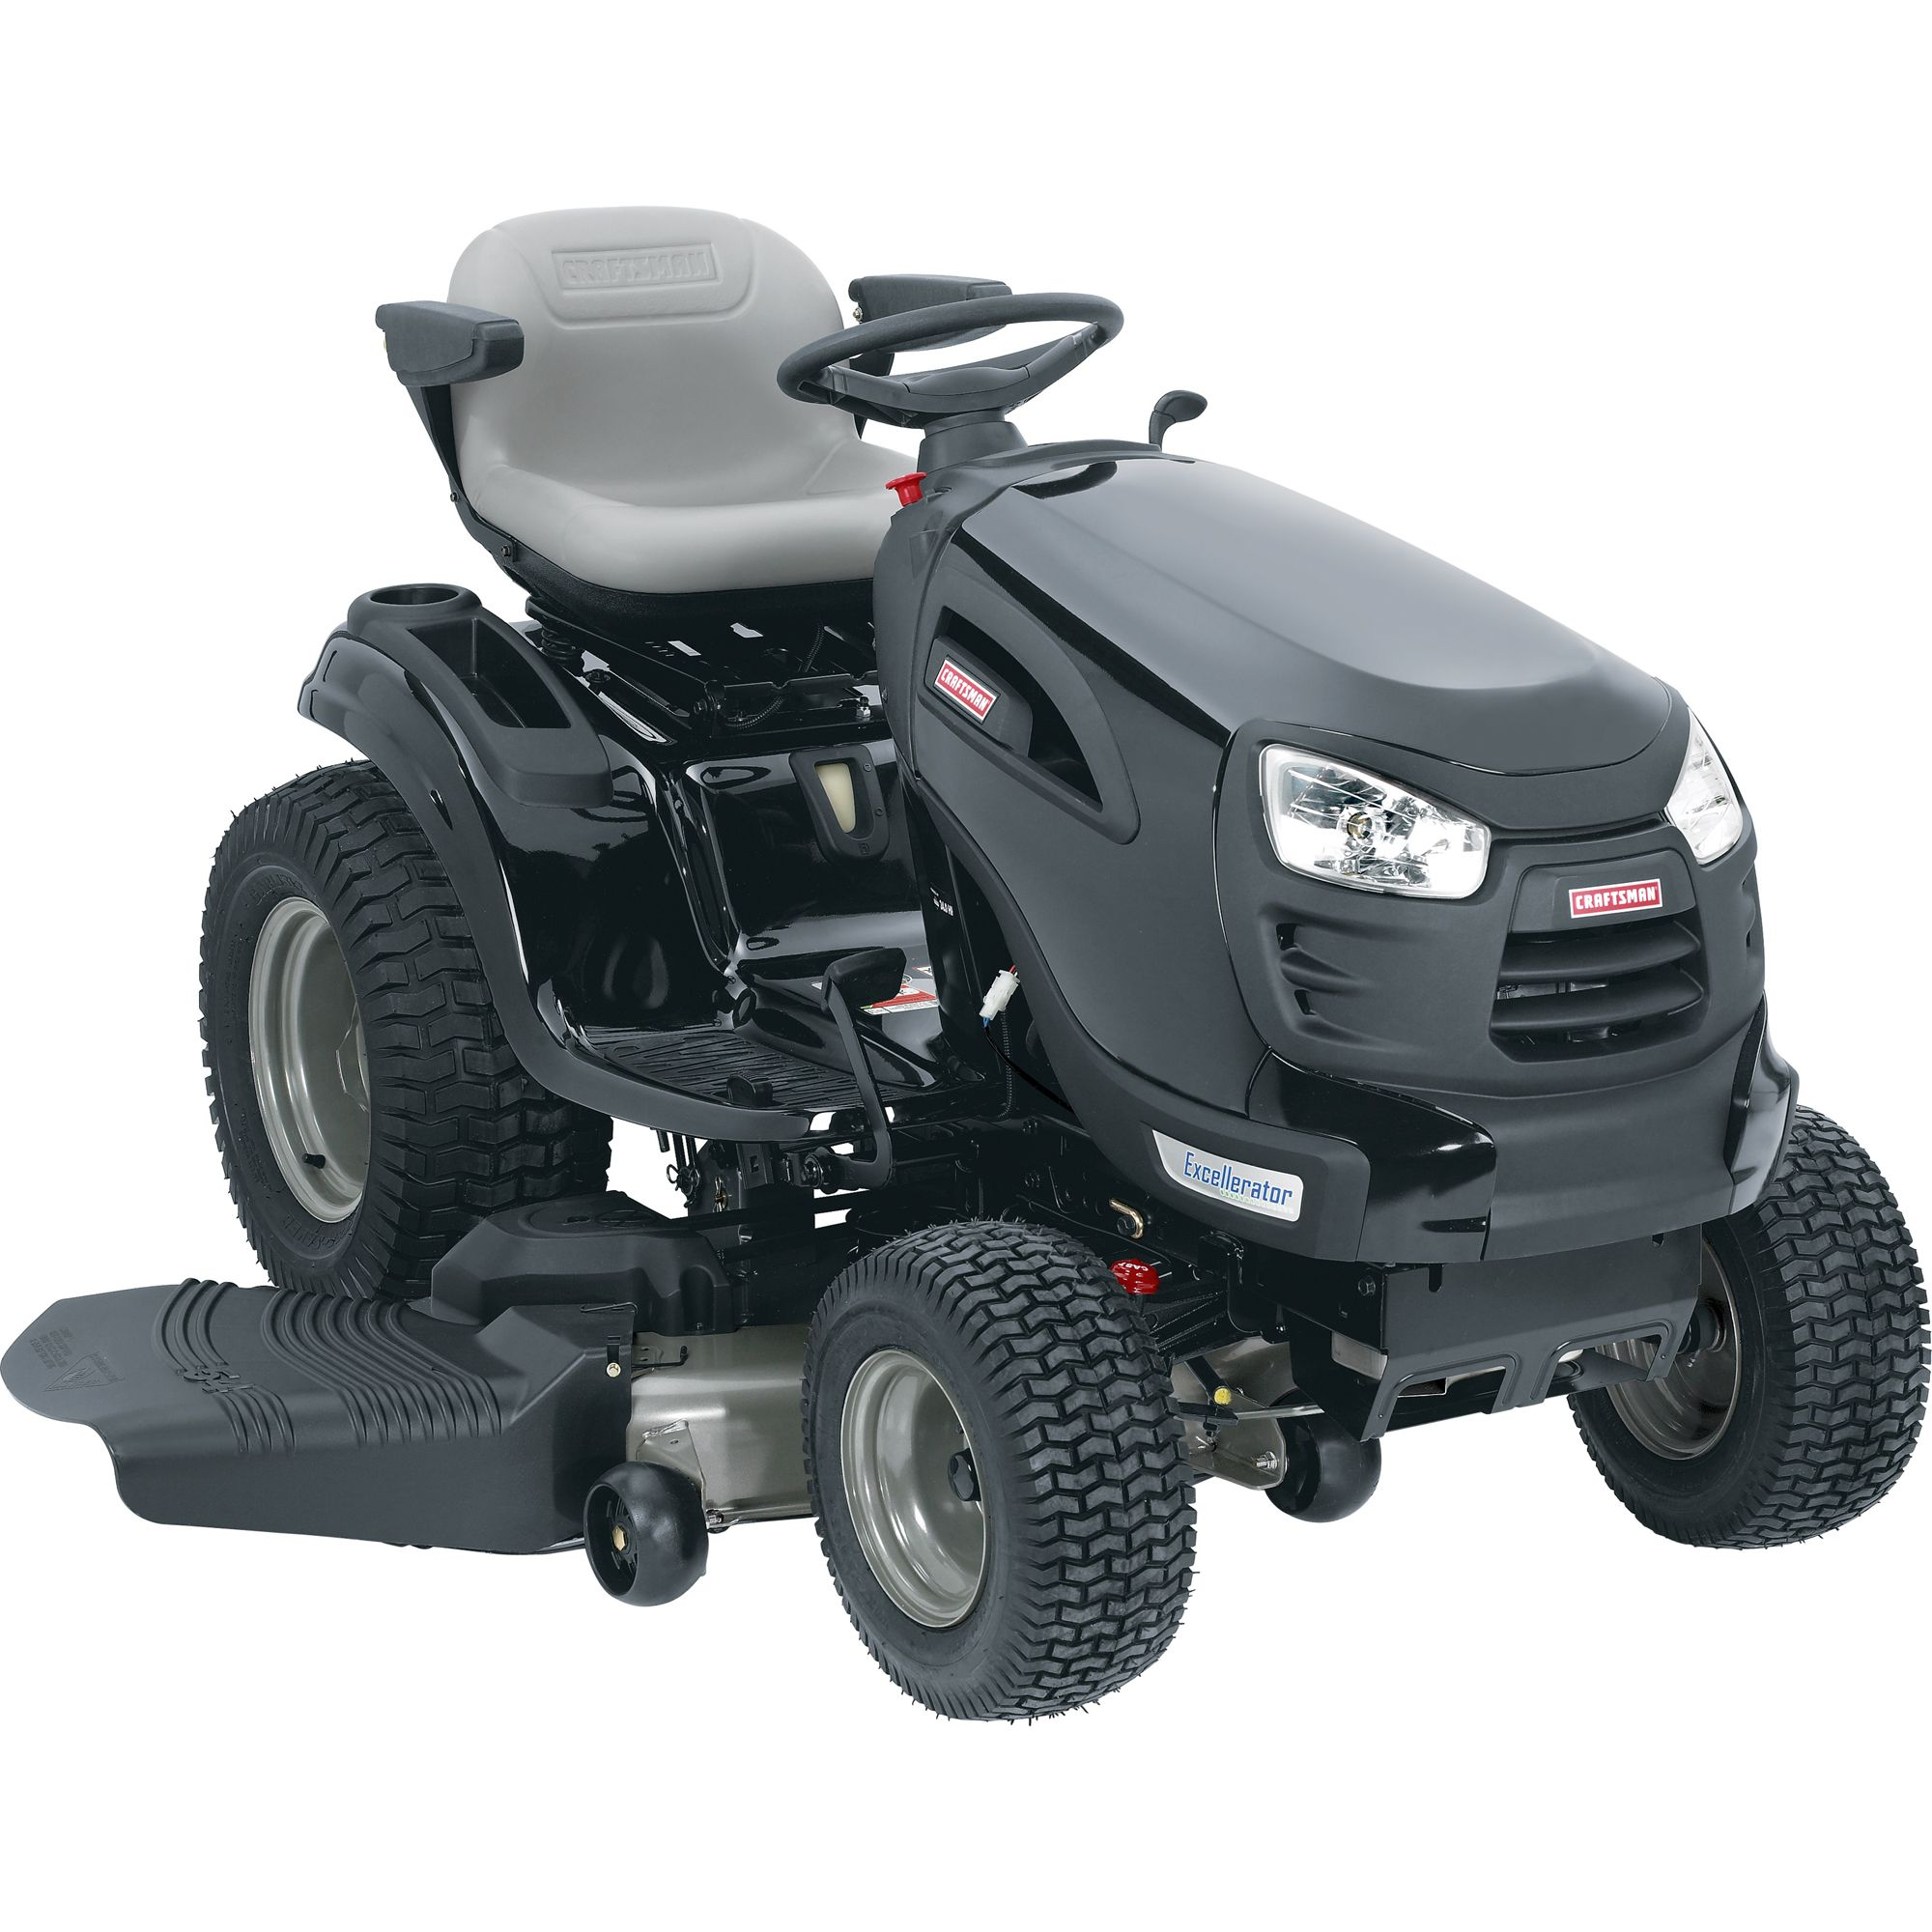 Swell Old Sears Roper Garden Tractors Gardening Flower And Vegetables Wiring Digital Resources Jebrpcompassionincorg